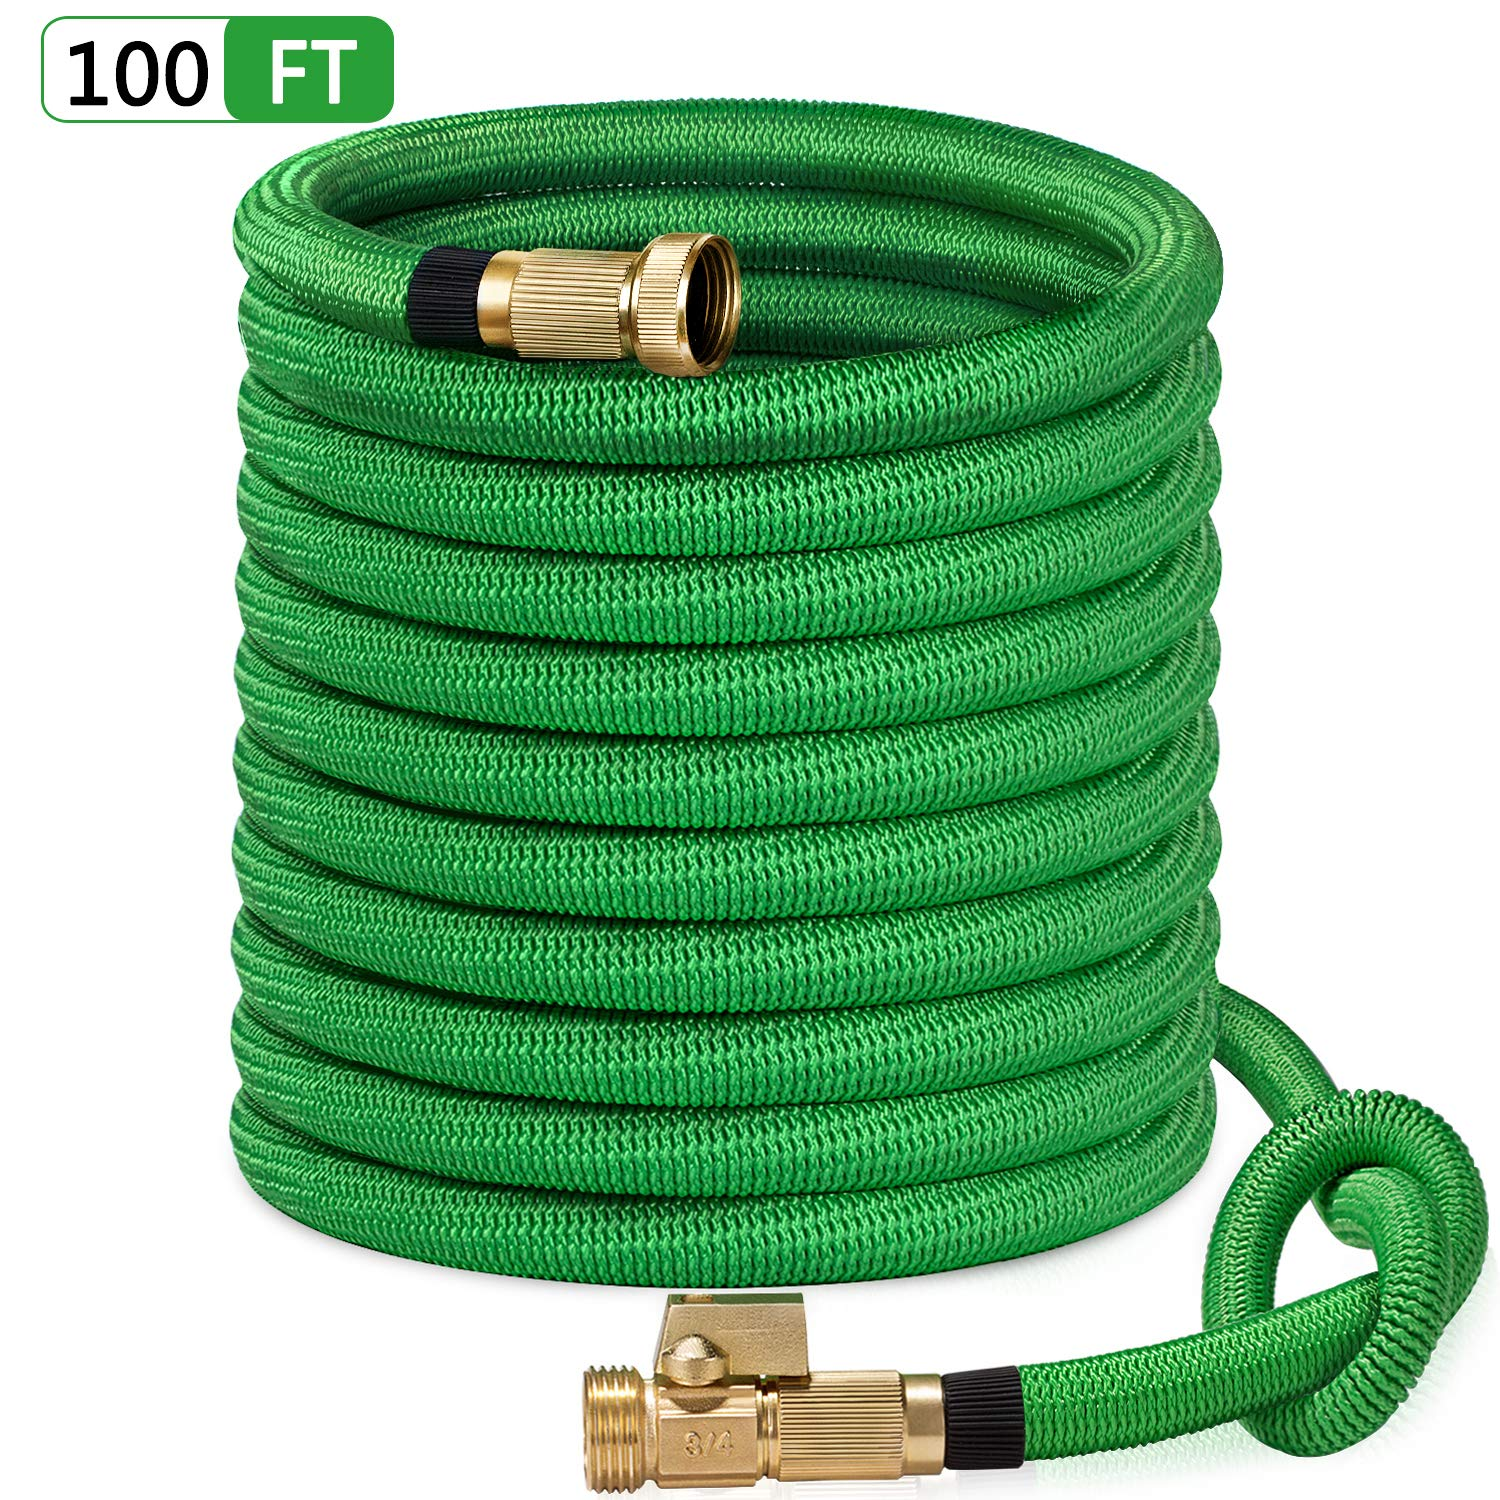 SunGreen 100ft Garden Hose, All New 2019 Expandable Water Hose with 3/4'' Solid Brass Fittings, Extra Strength Fabric - Flexible Expanding Hose with Free Storage Sack